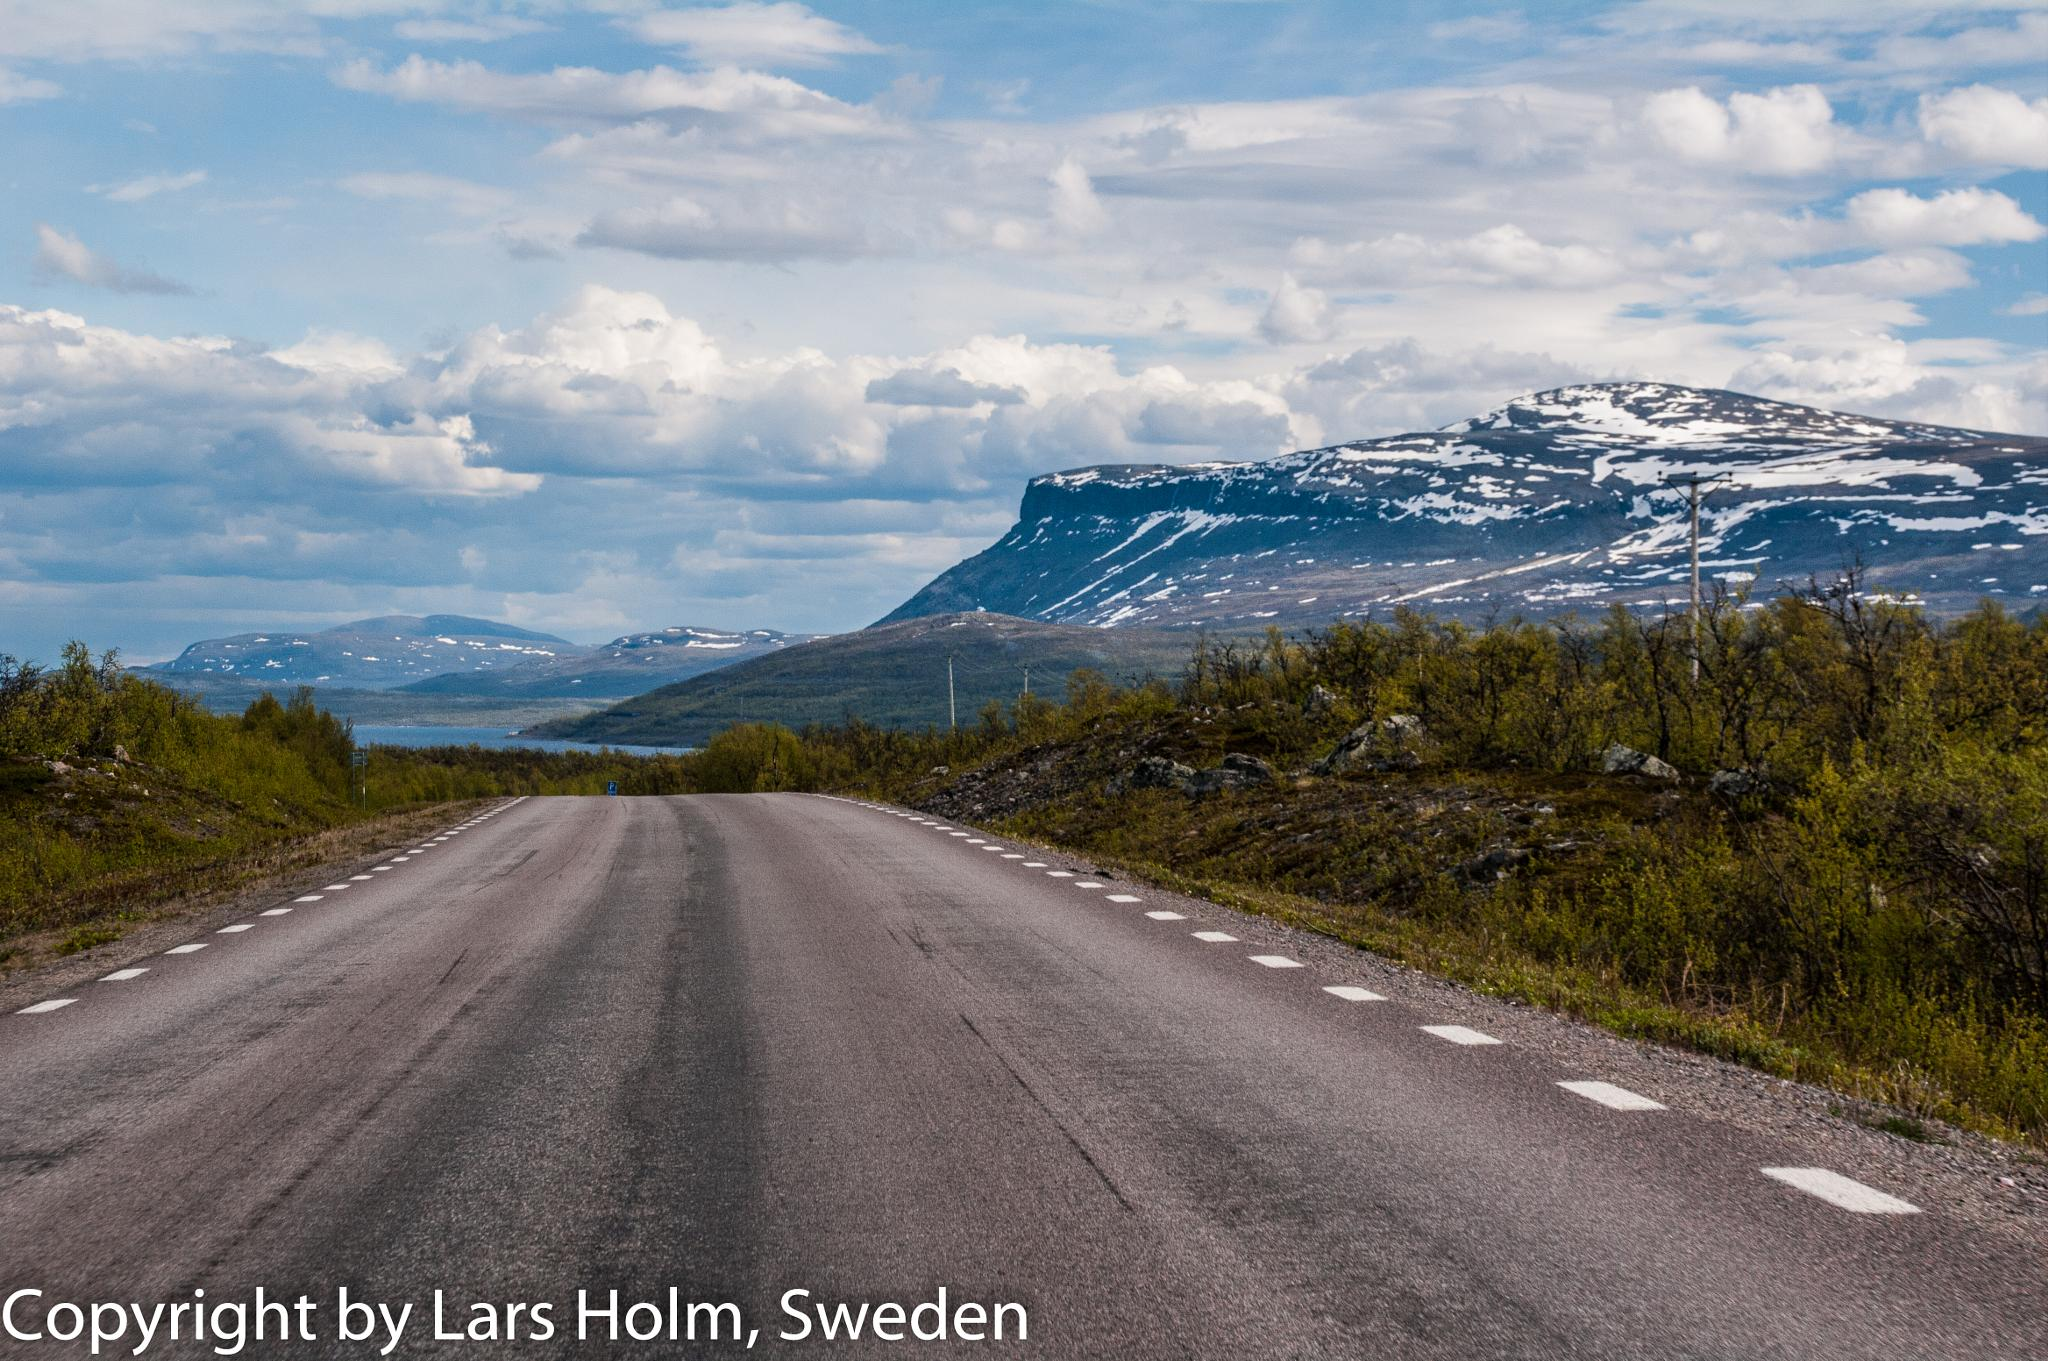 The E10 road to Kiruna from Abisko by LarsHolm